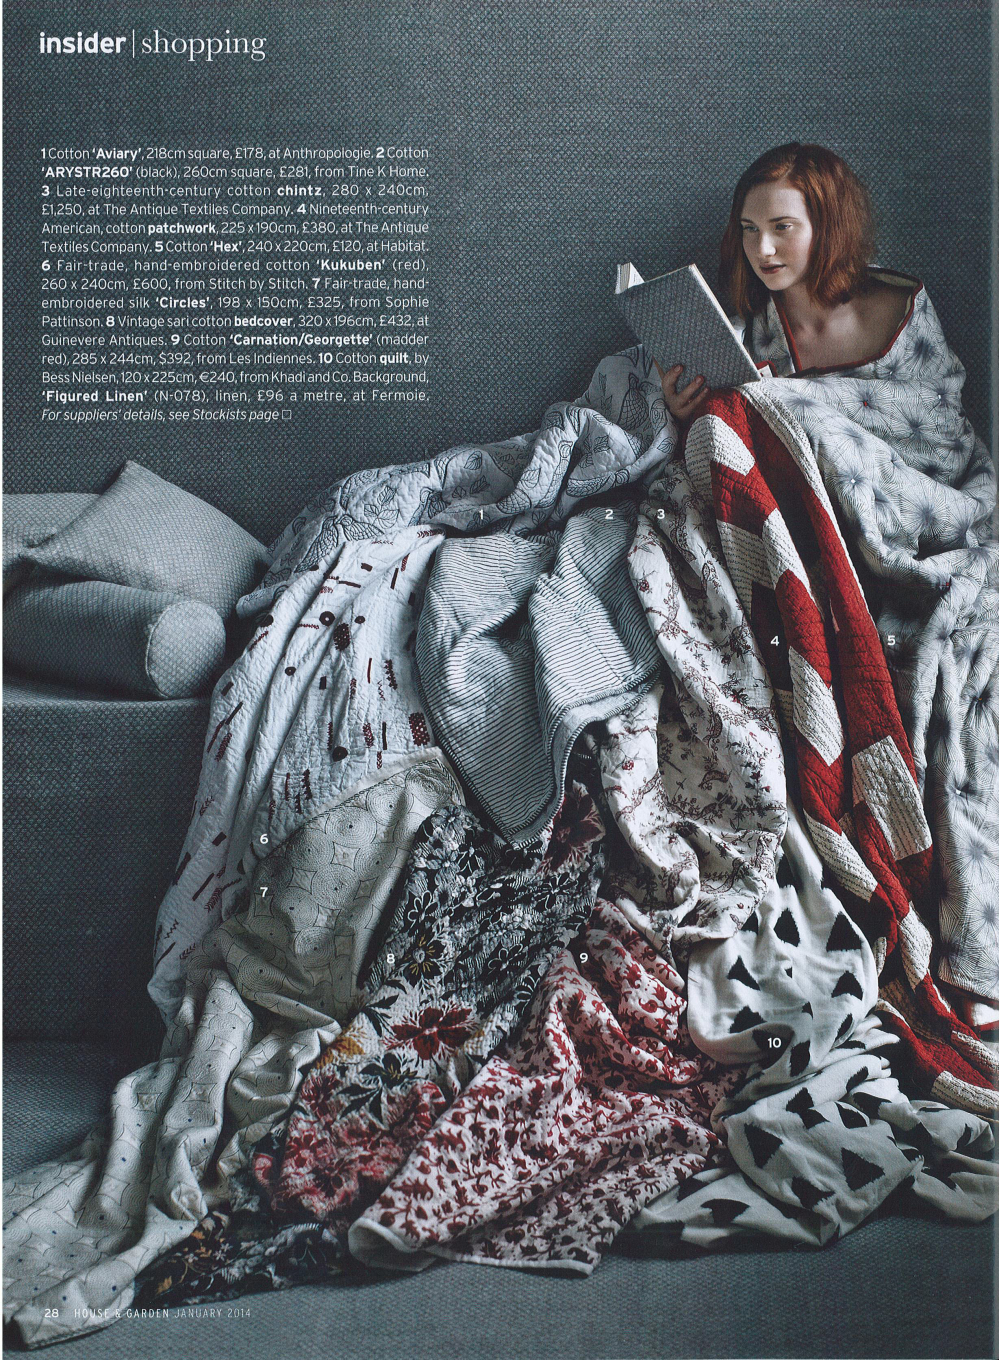 """House and Garden, Jan 2014: """"Sleeping Beauties"""" featuring our red and white embroidered Kukuben quilt (no.6)."""